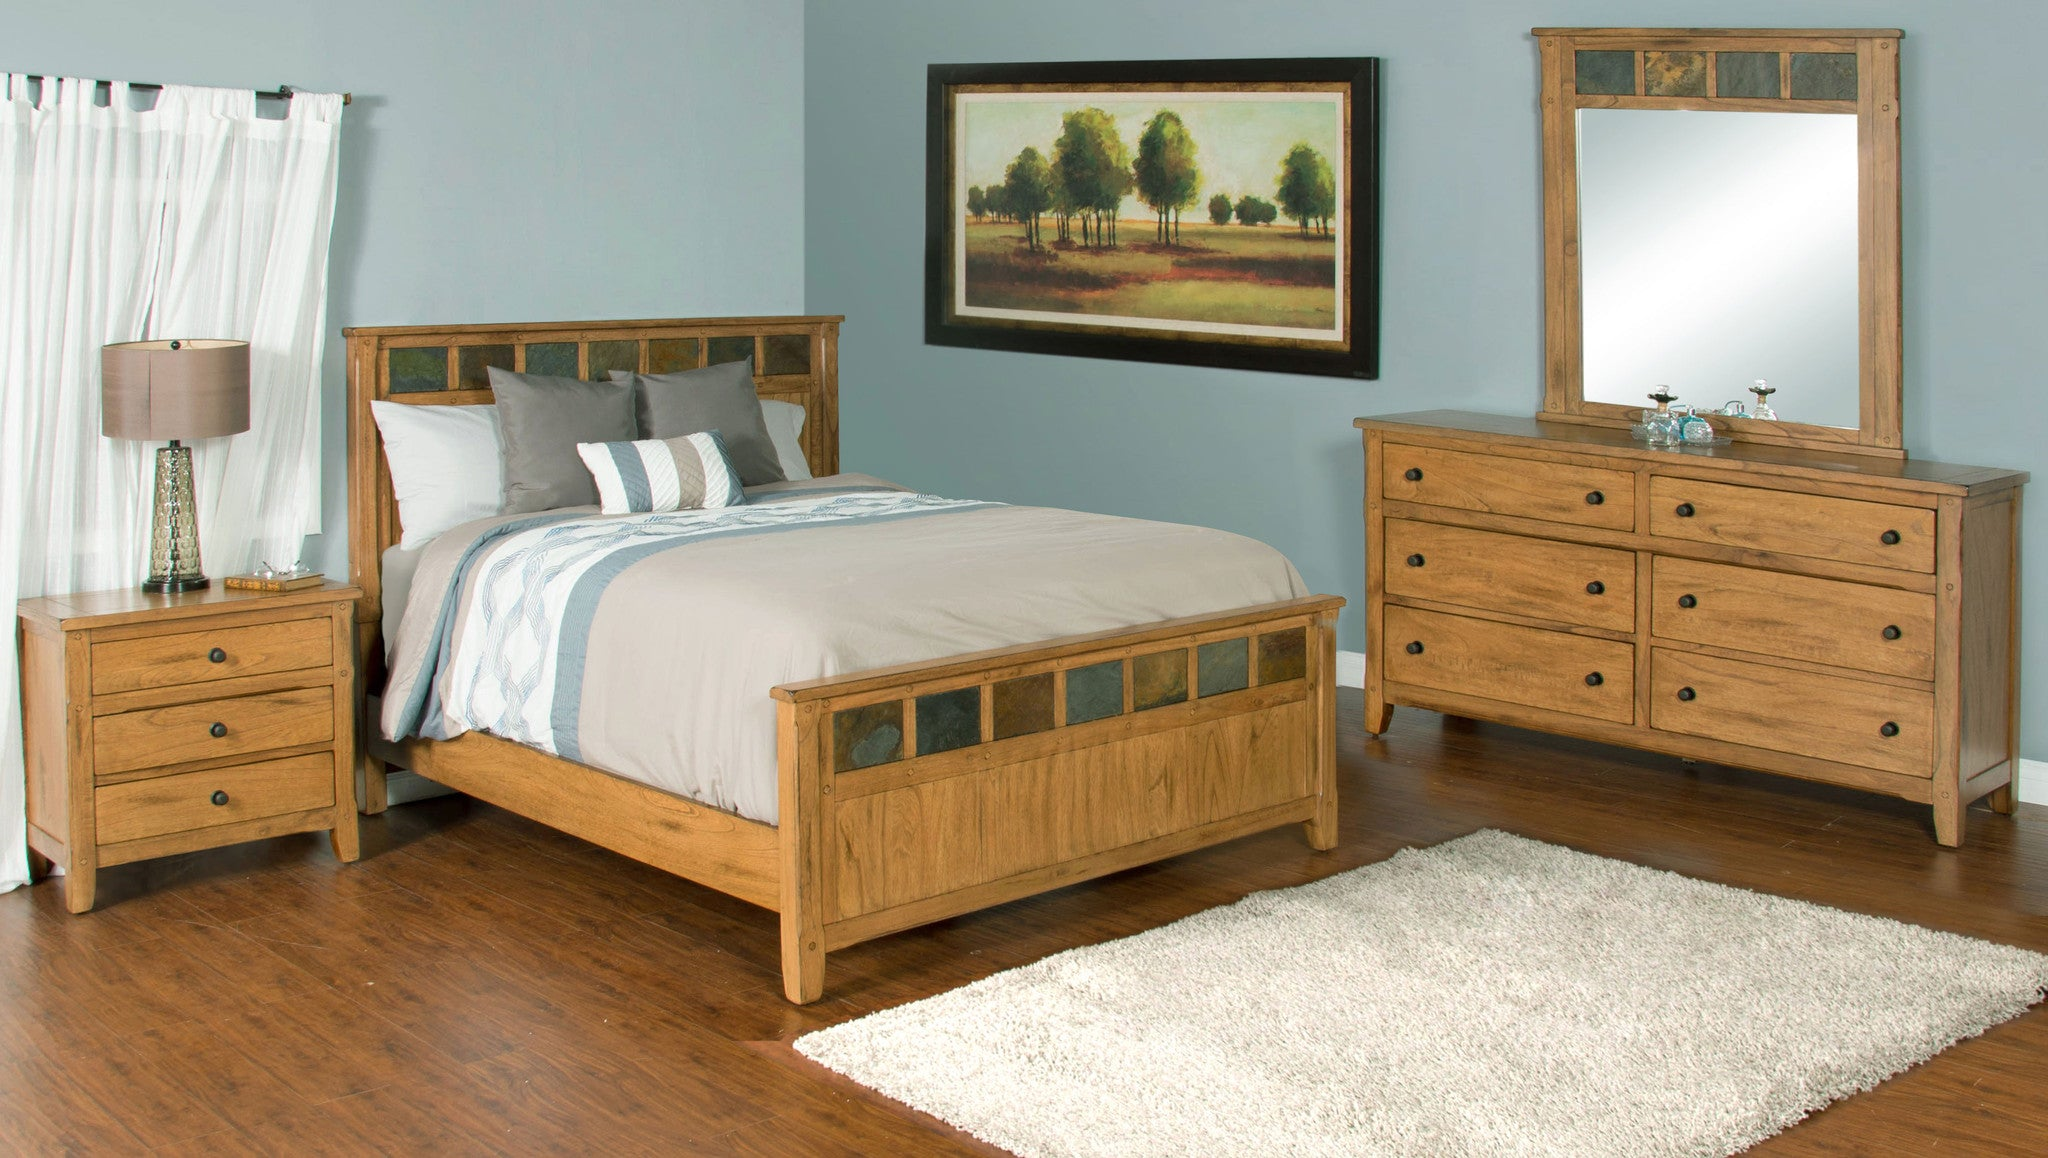 sedona rustic petite panel bedroom suite queen size. Black Bedroom Furniture Sets. Home Design Ideas